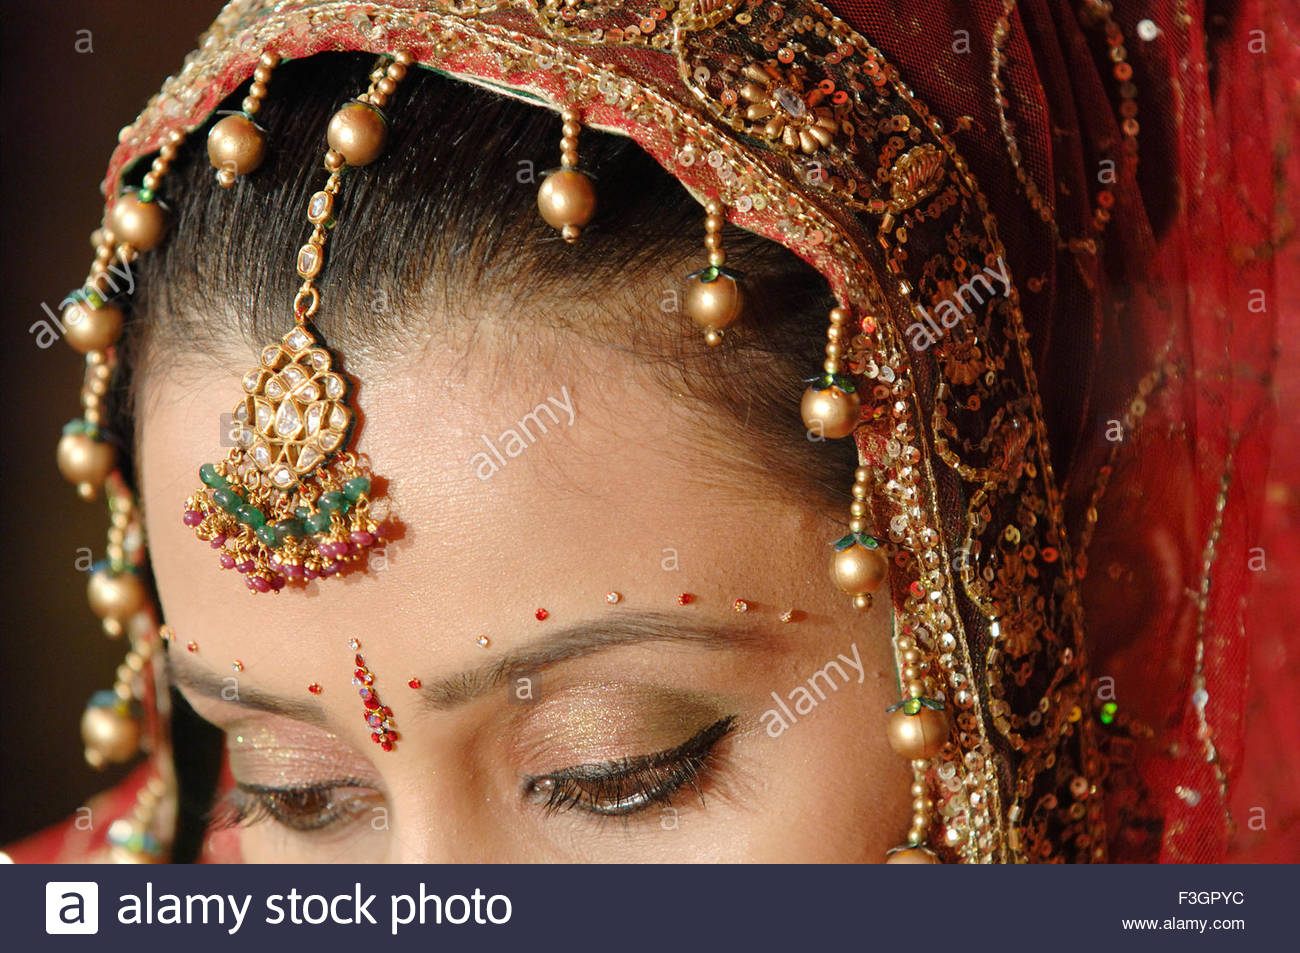 Marriage ornaments - Bride With Pallu Of Sari Covering Head From Back Ornaments And Eye Make Up In Indian